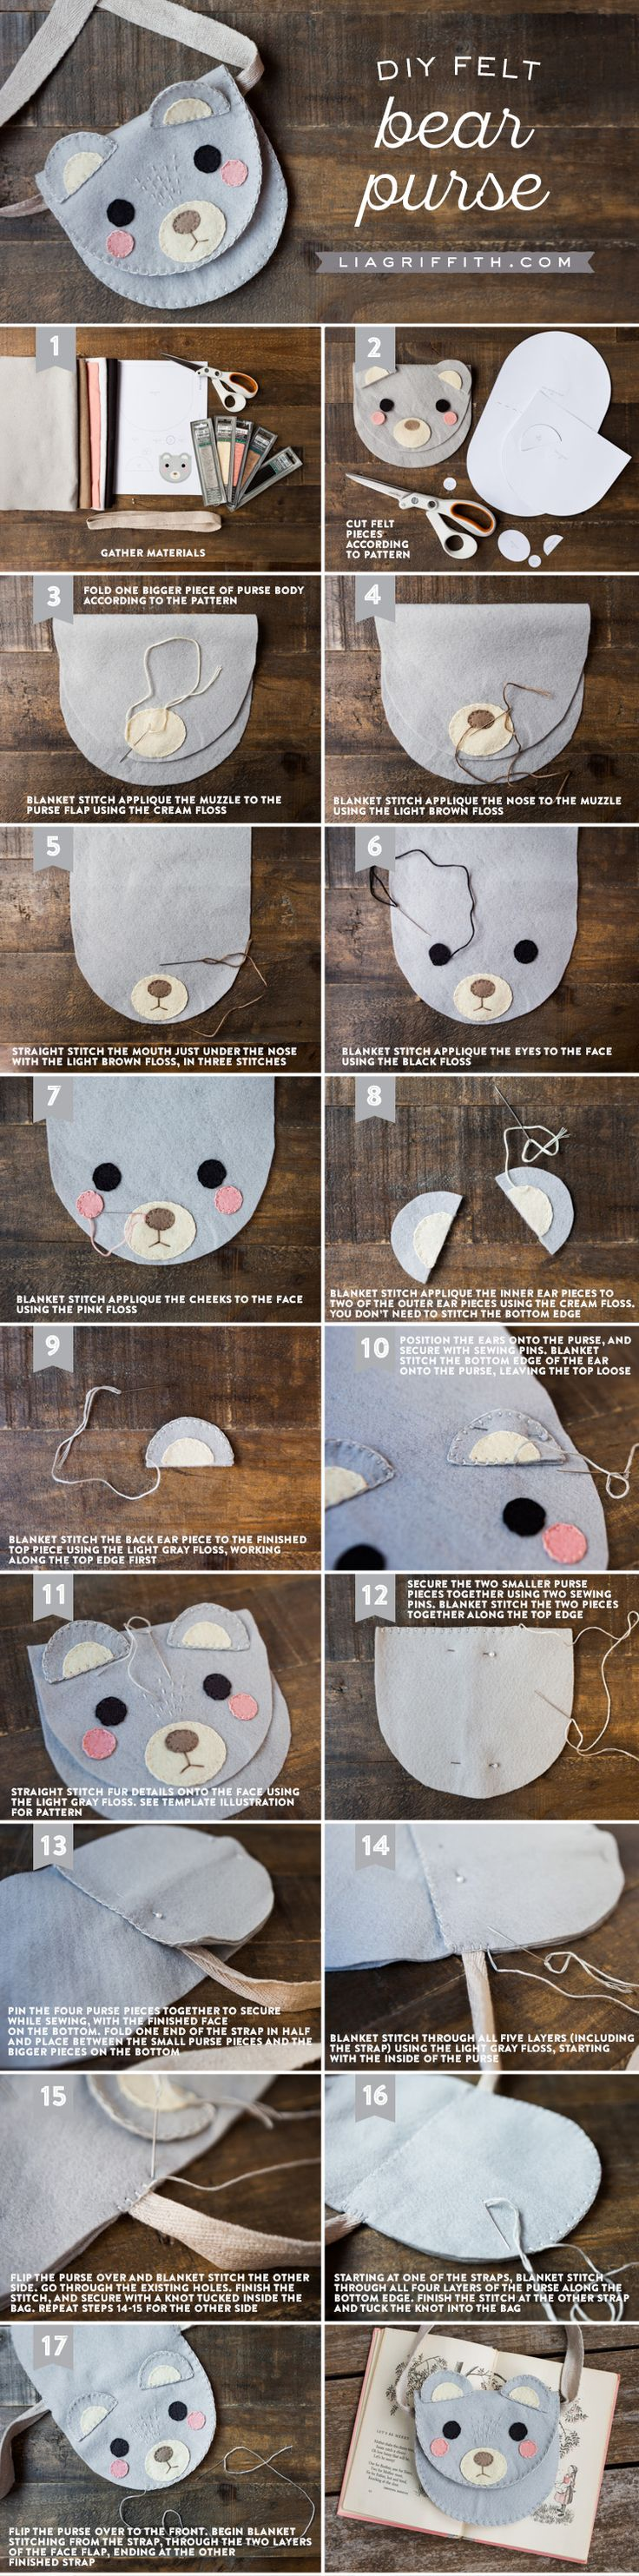 Here's a perfect sewing activity to sit down and do with your kids. Create a play felt bag animal friend for them to wear around the house and to school. Click through to get Lia Griffith's DIY sewing tutorial for this bear felt bag.